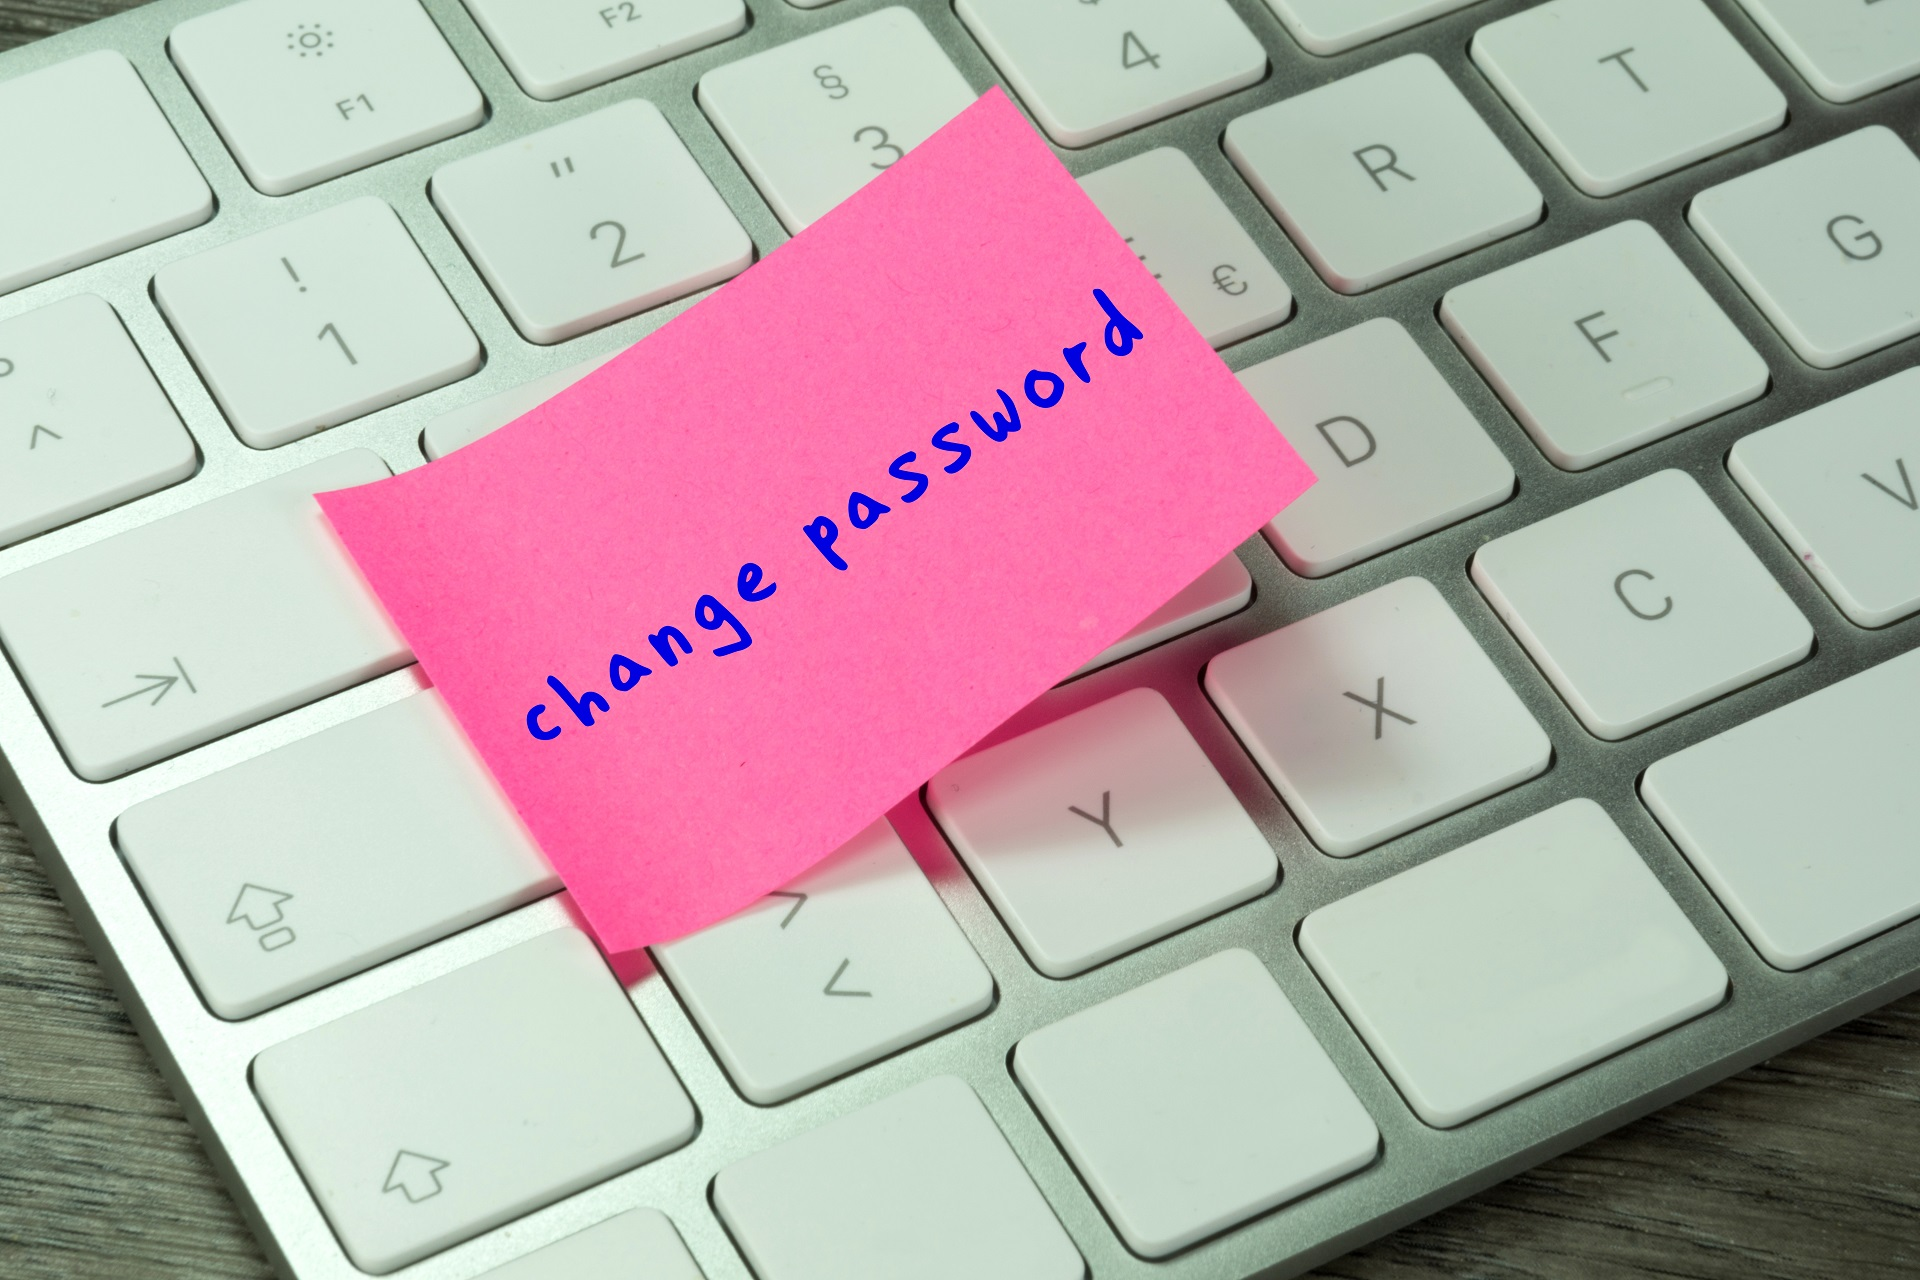 Create a passphrase instead of a password.